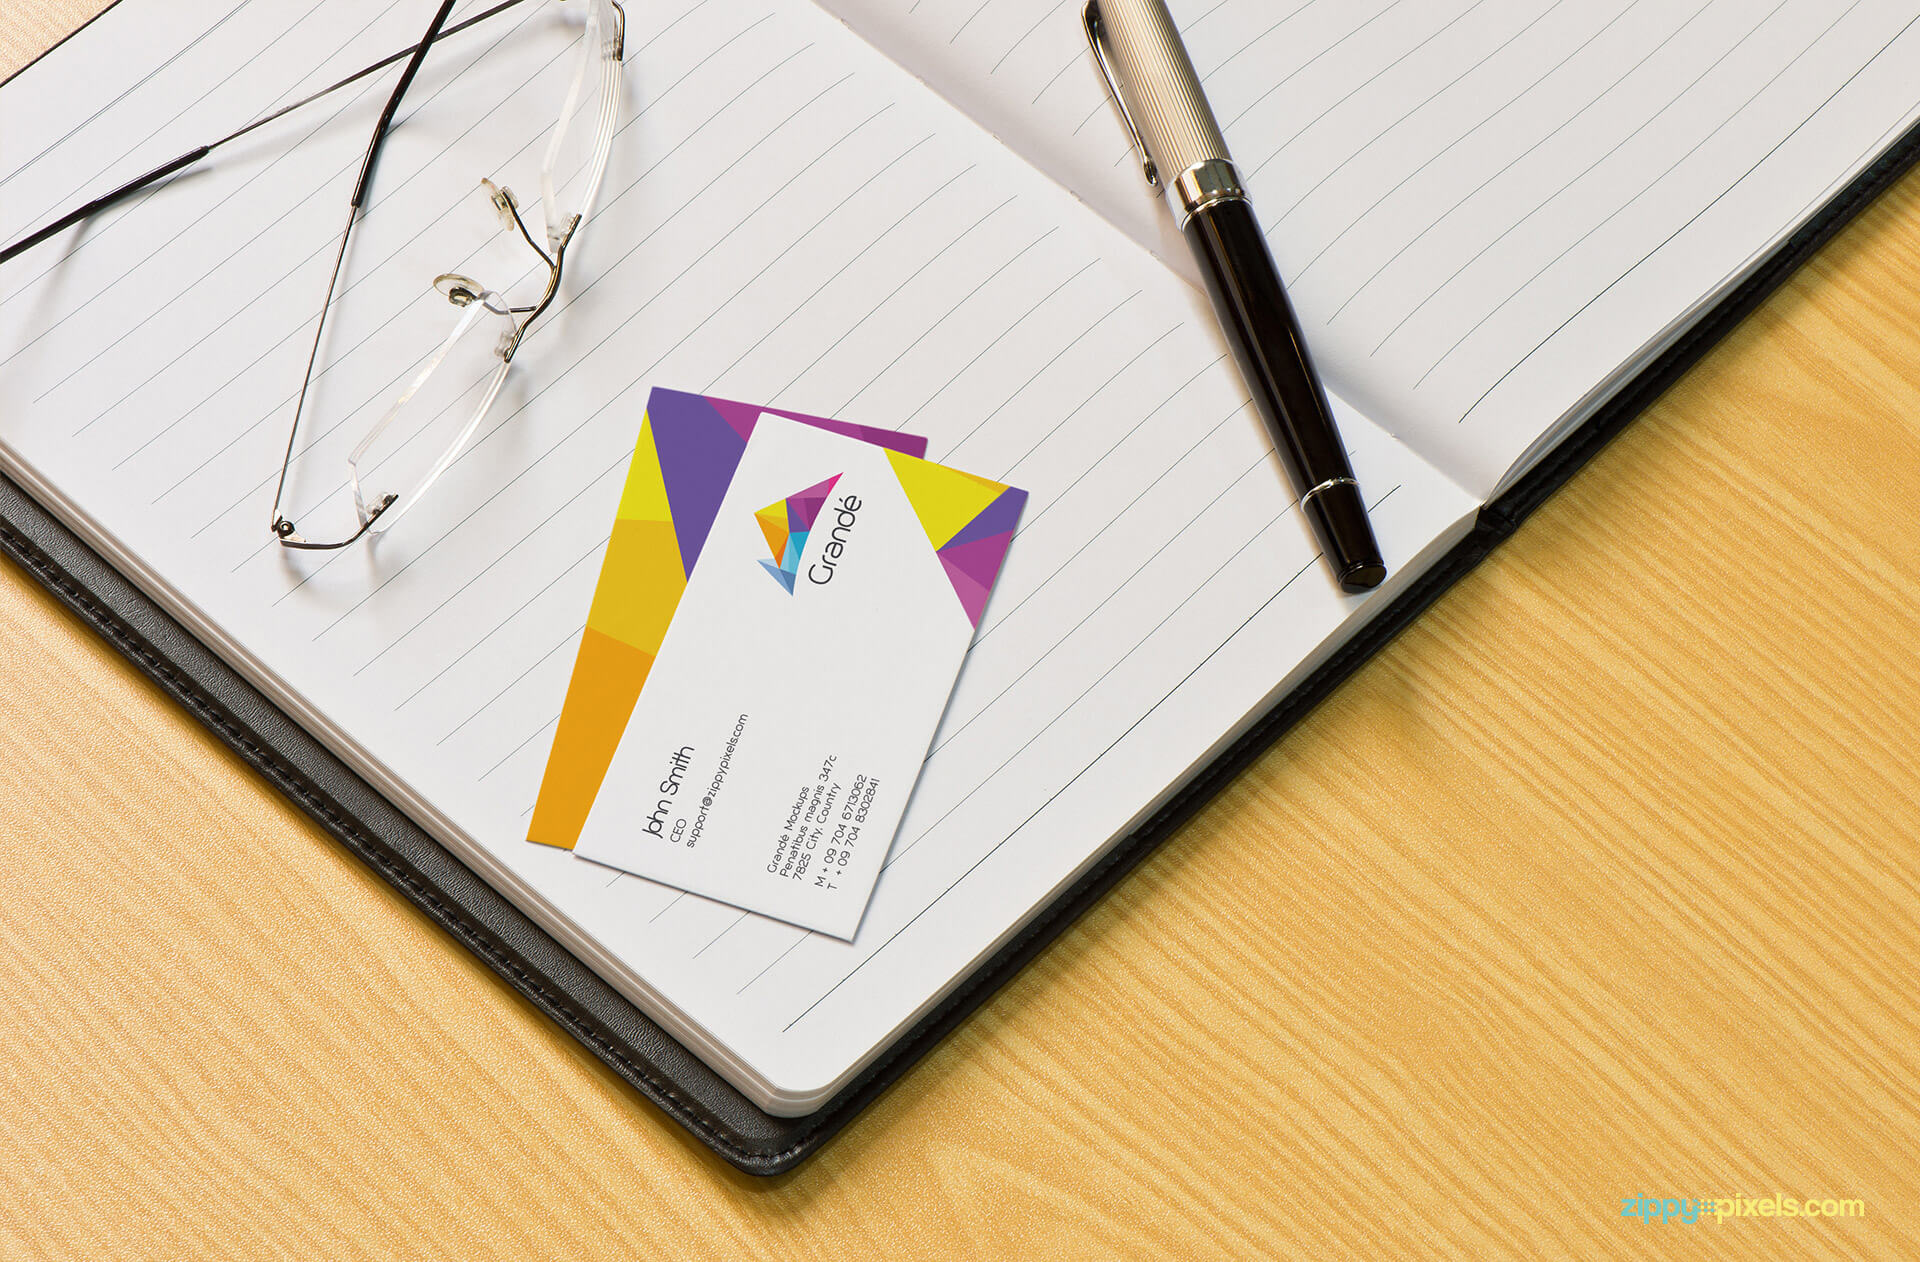 Brand Identity Mockup of 2 Business Cards on Diary with Pen and Spectacles